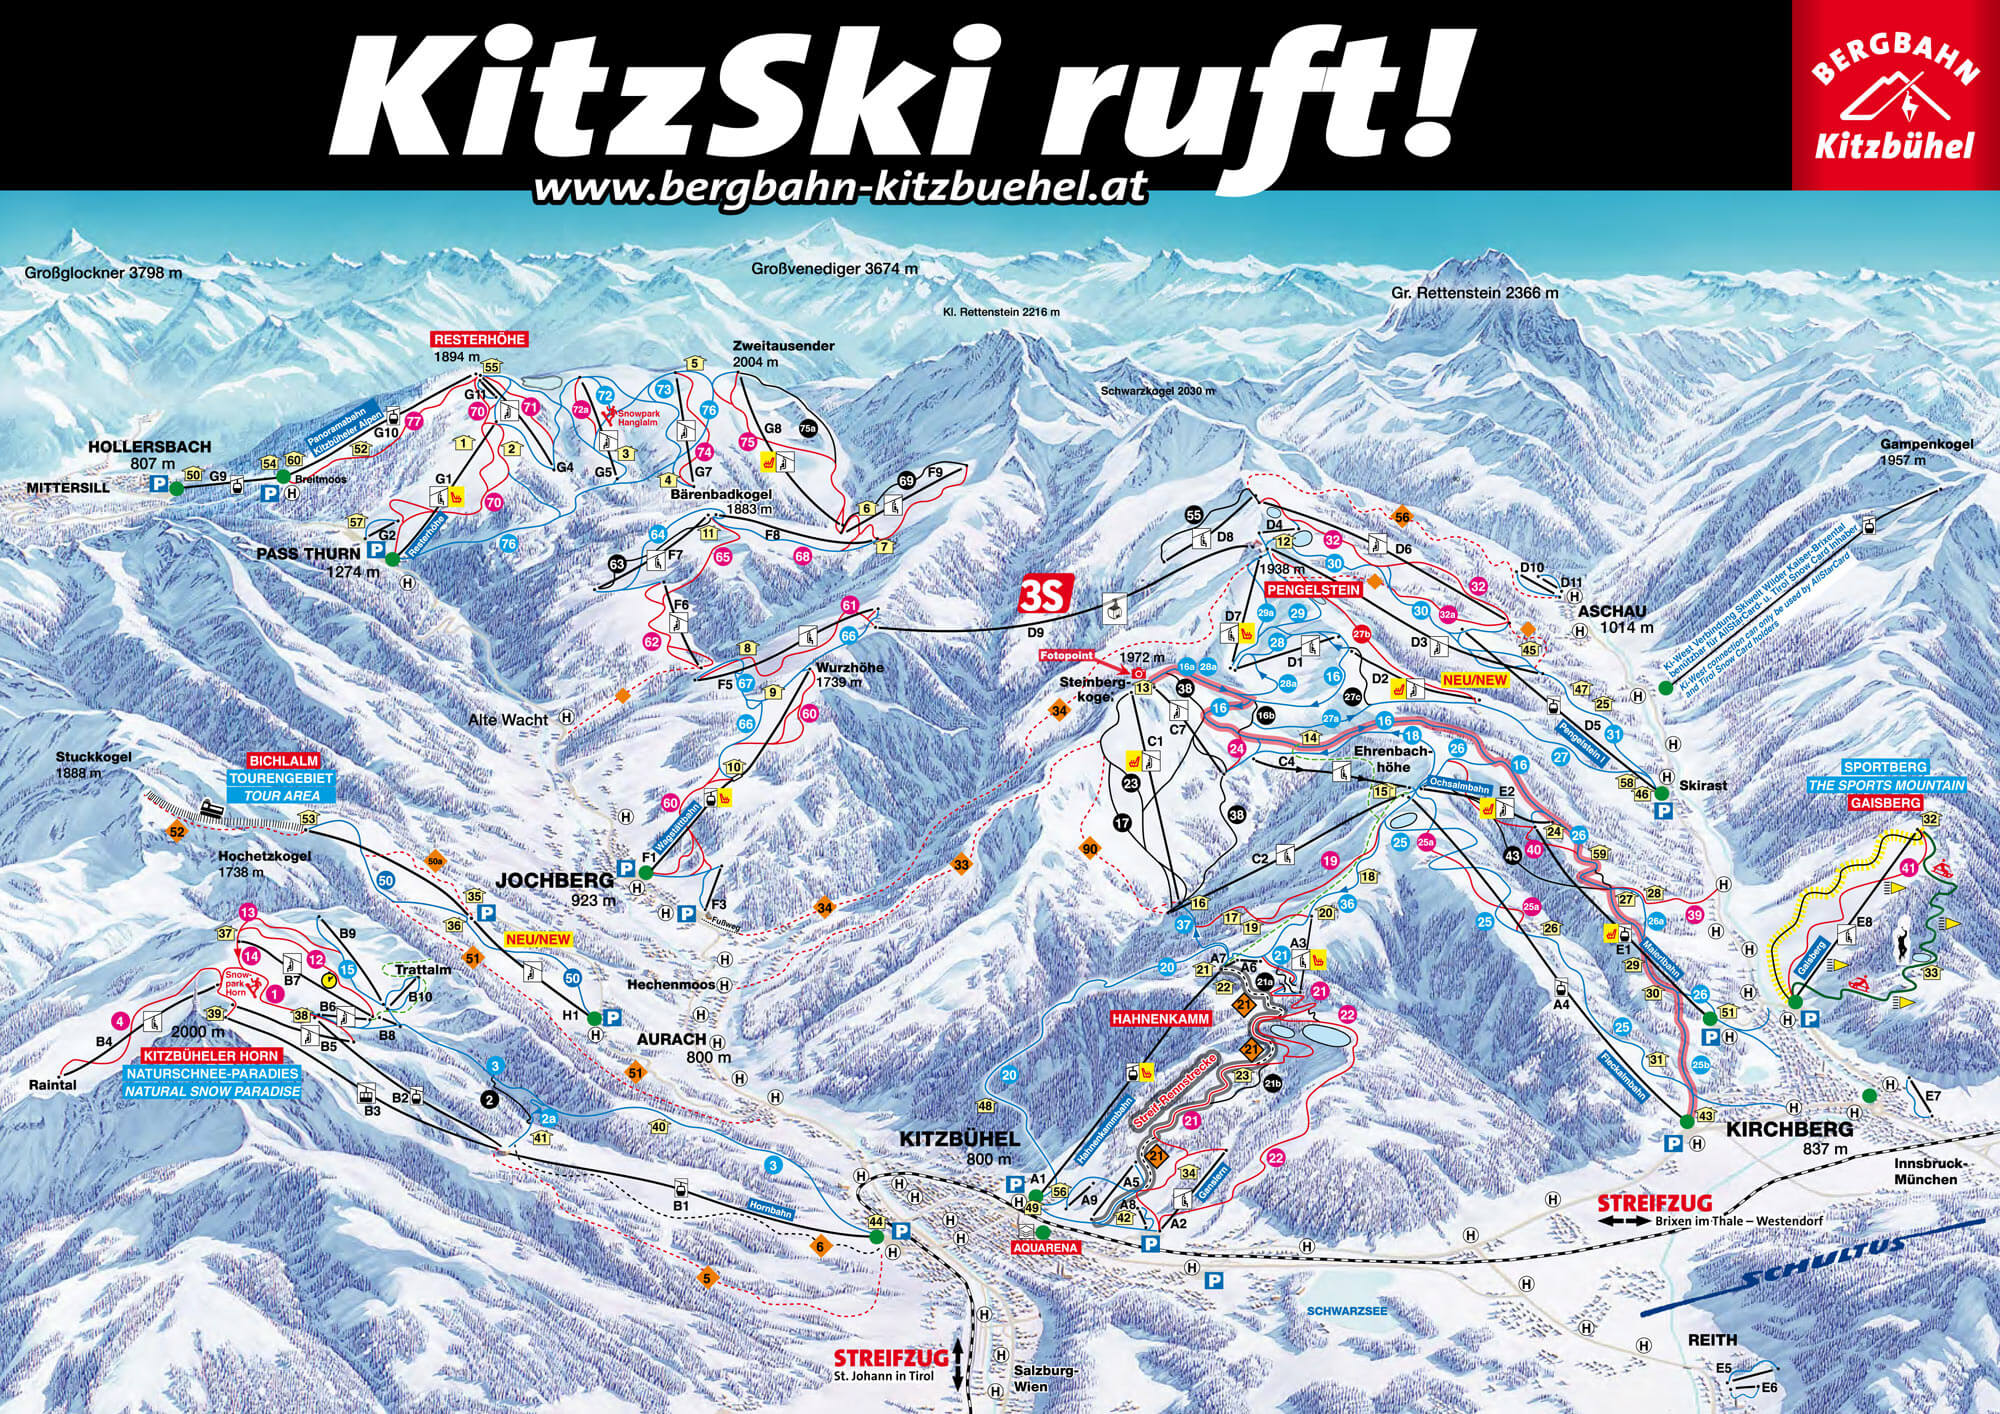 Kitzbuhel piste map